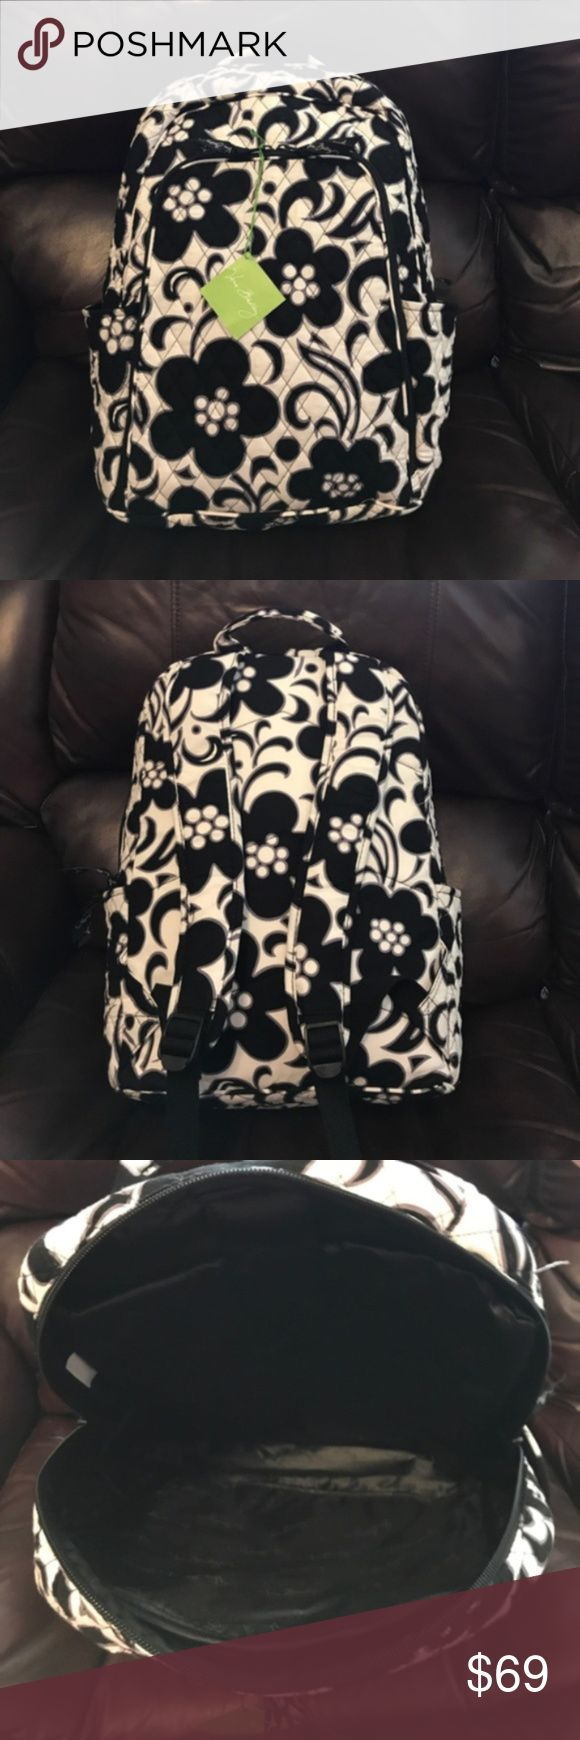 "NWT Vera Bradley night and day laptop backpack NWT Vera Bradley night and day laptop backpack. Measures 11½"" x 15¾"" x 7"" with 28½"" adjustable straps. Vera Bradley Bags Backpacks"